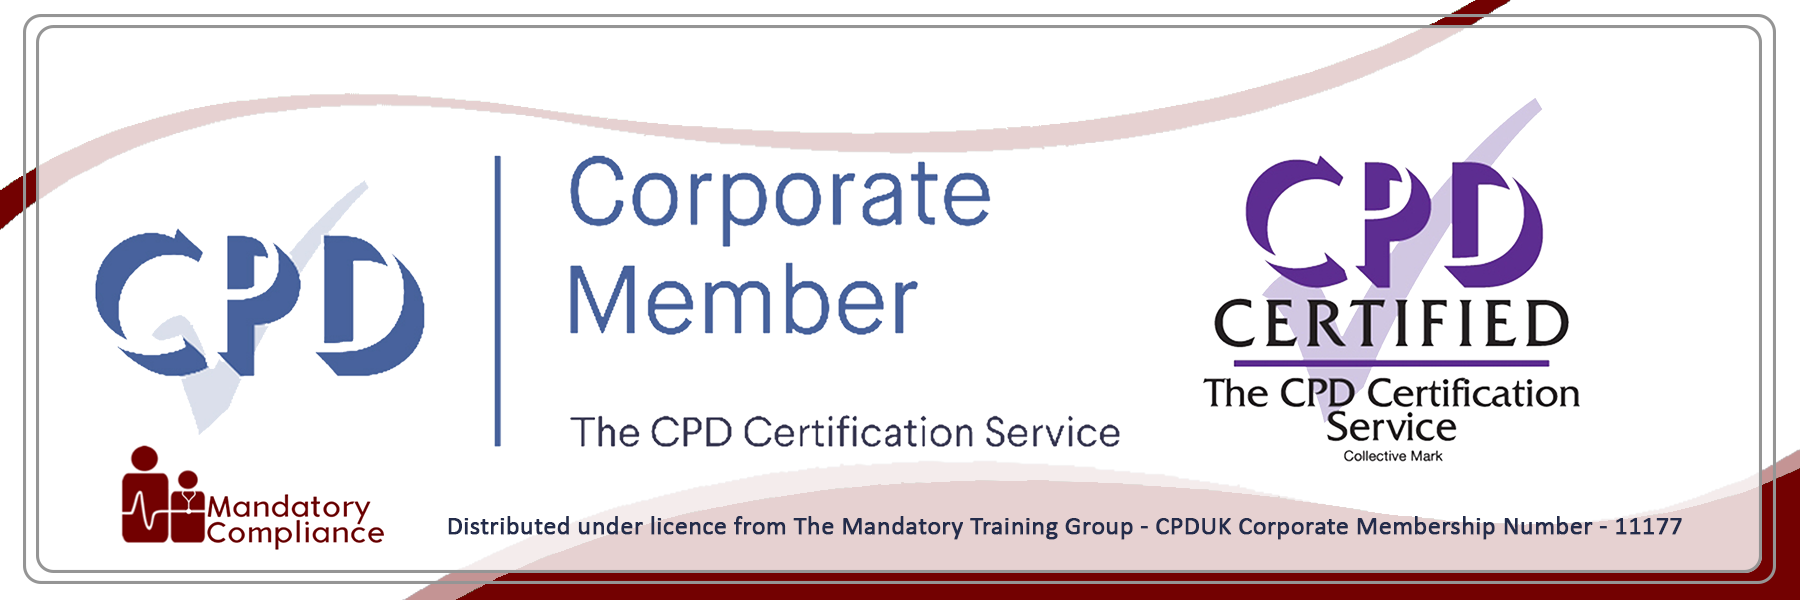 Mandatory Training Courses for Nursing Homes and Care Home Staff - Online Training Course - CPDUK Accredited -